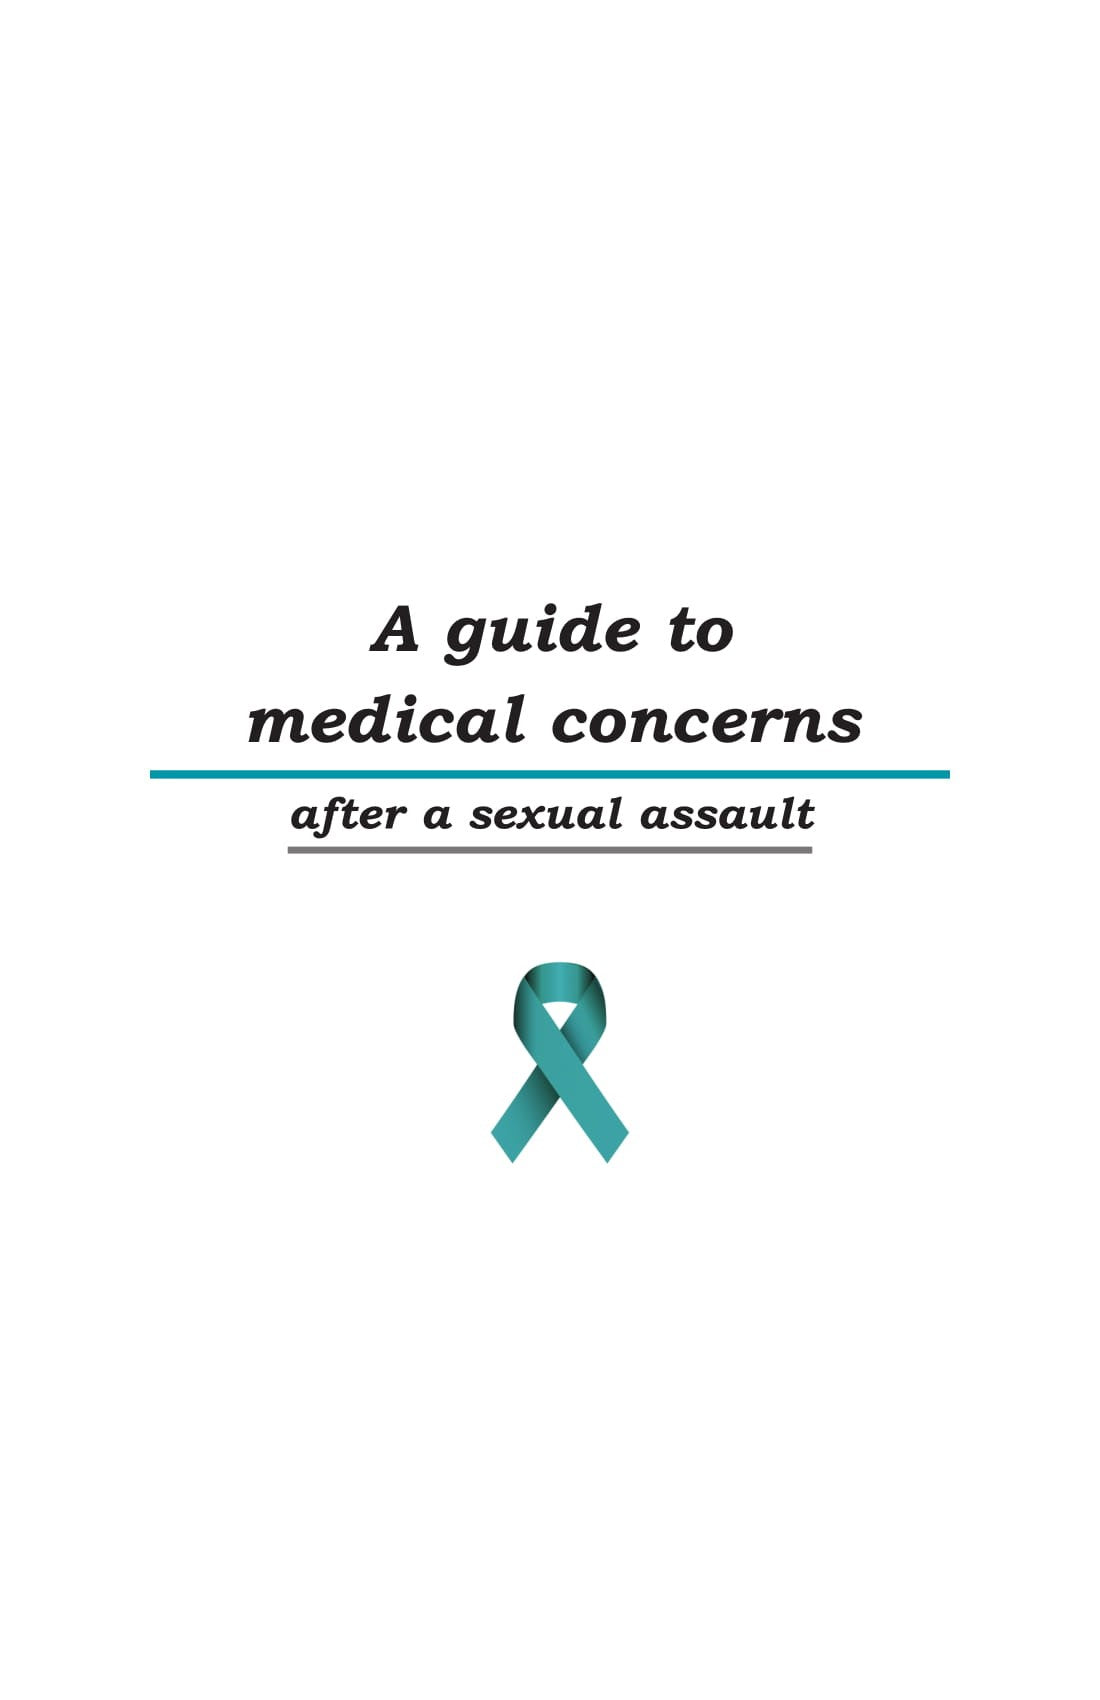 A Guide to Medical Concerns after a Sexual Assault Pamphlet (set of 50)